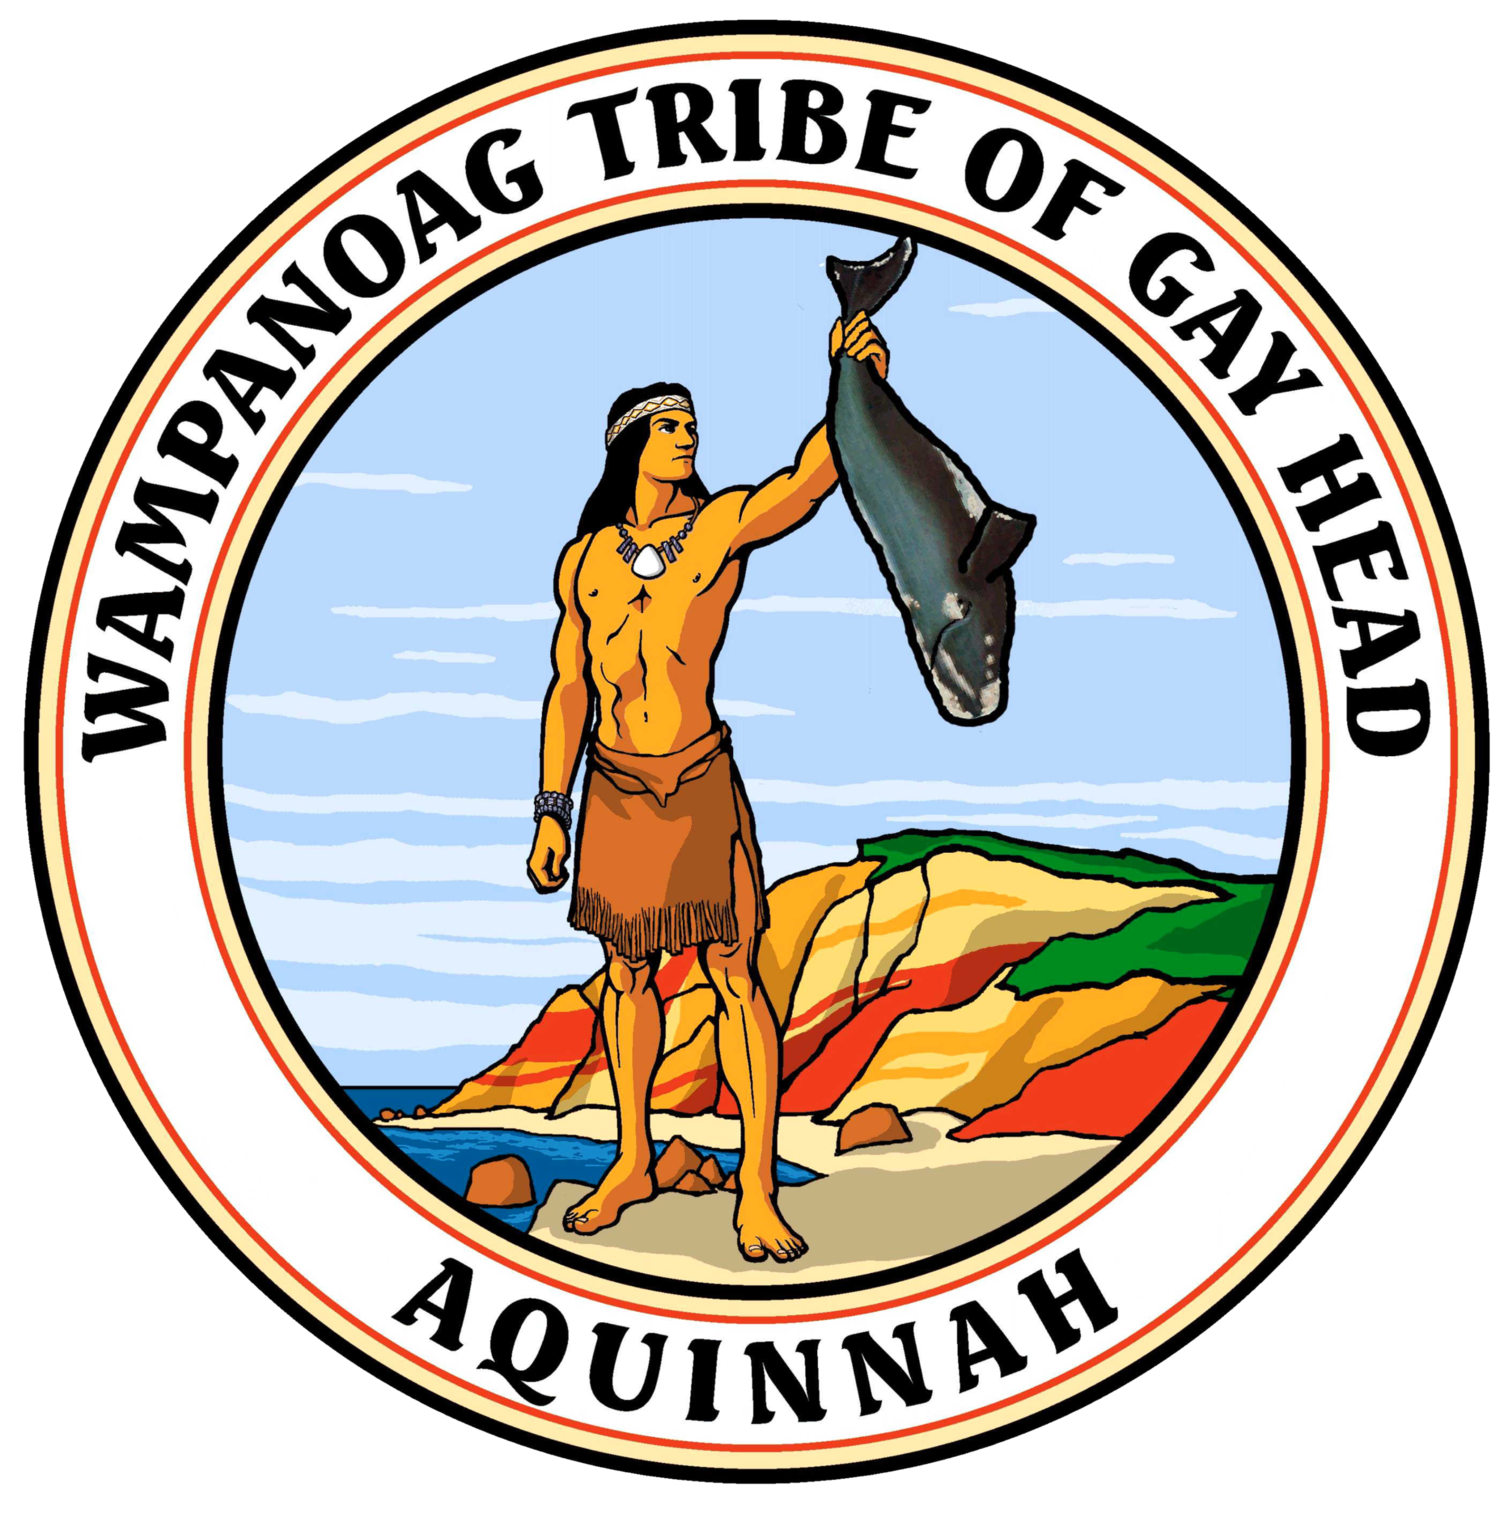 Wampanoag Tribe of Gay Head (Aquinnah)